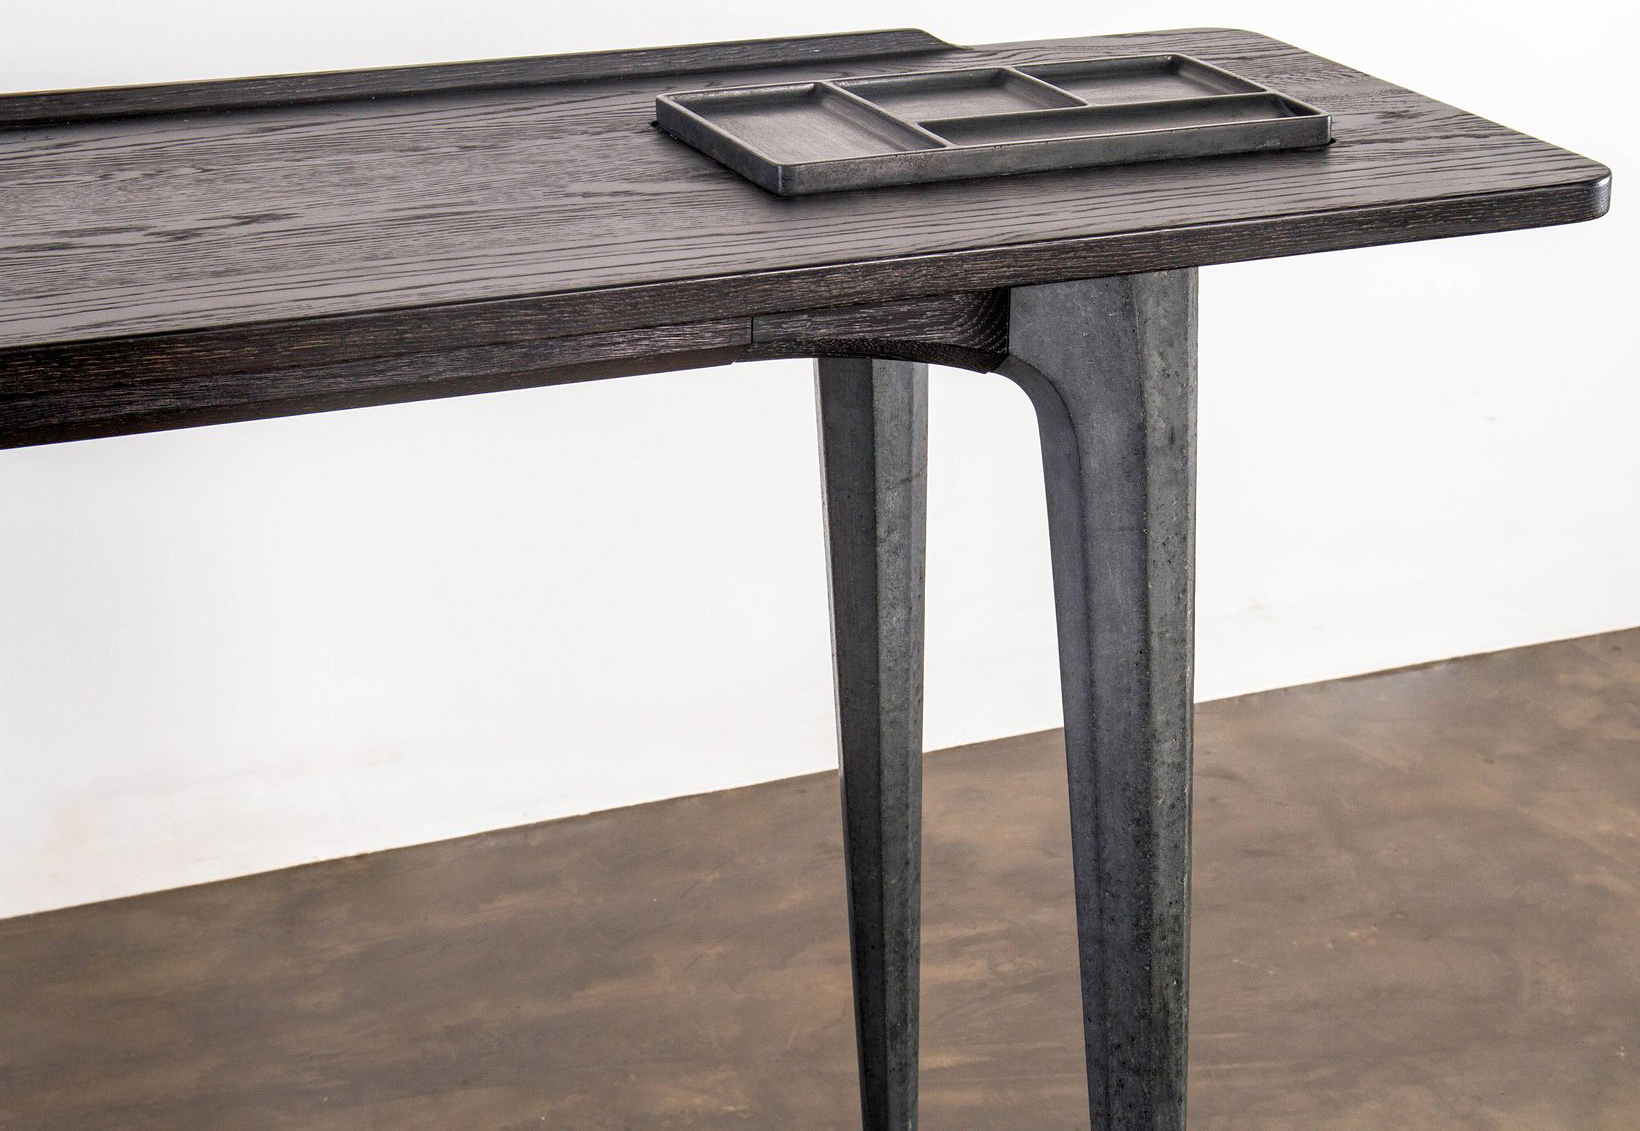 nuevo living salk console table seared oak acid black inserted accessories holder